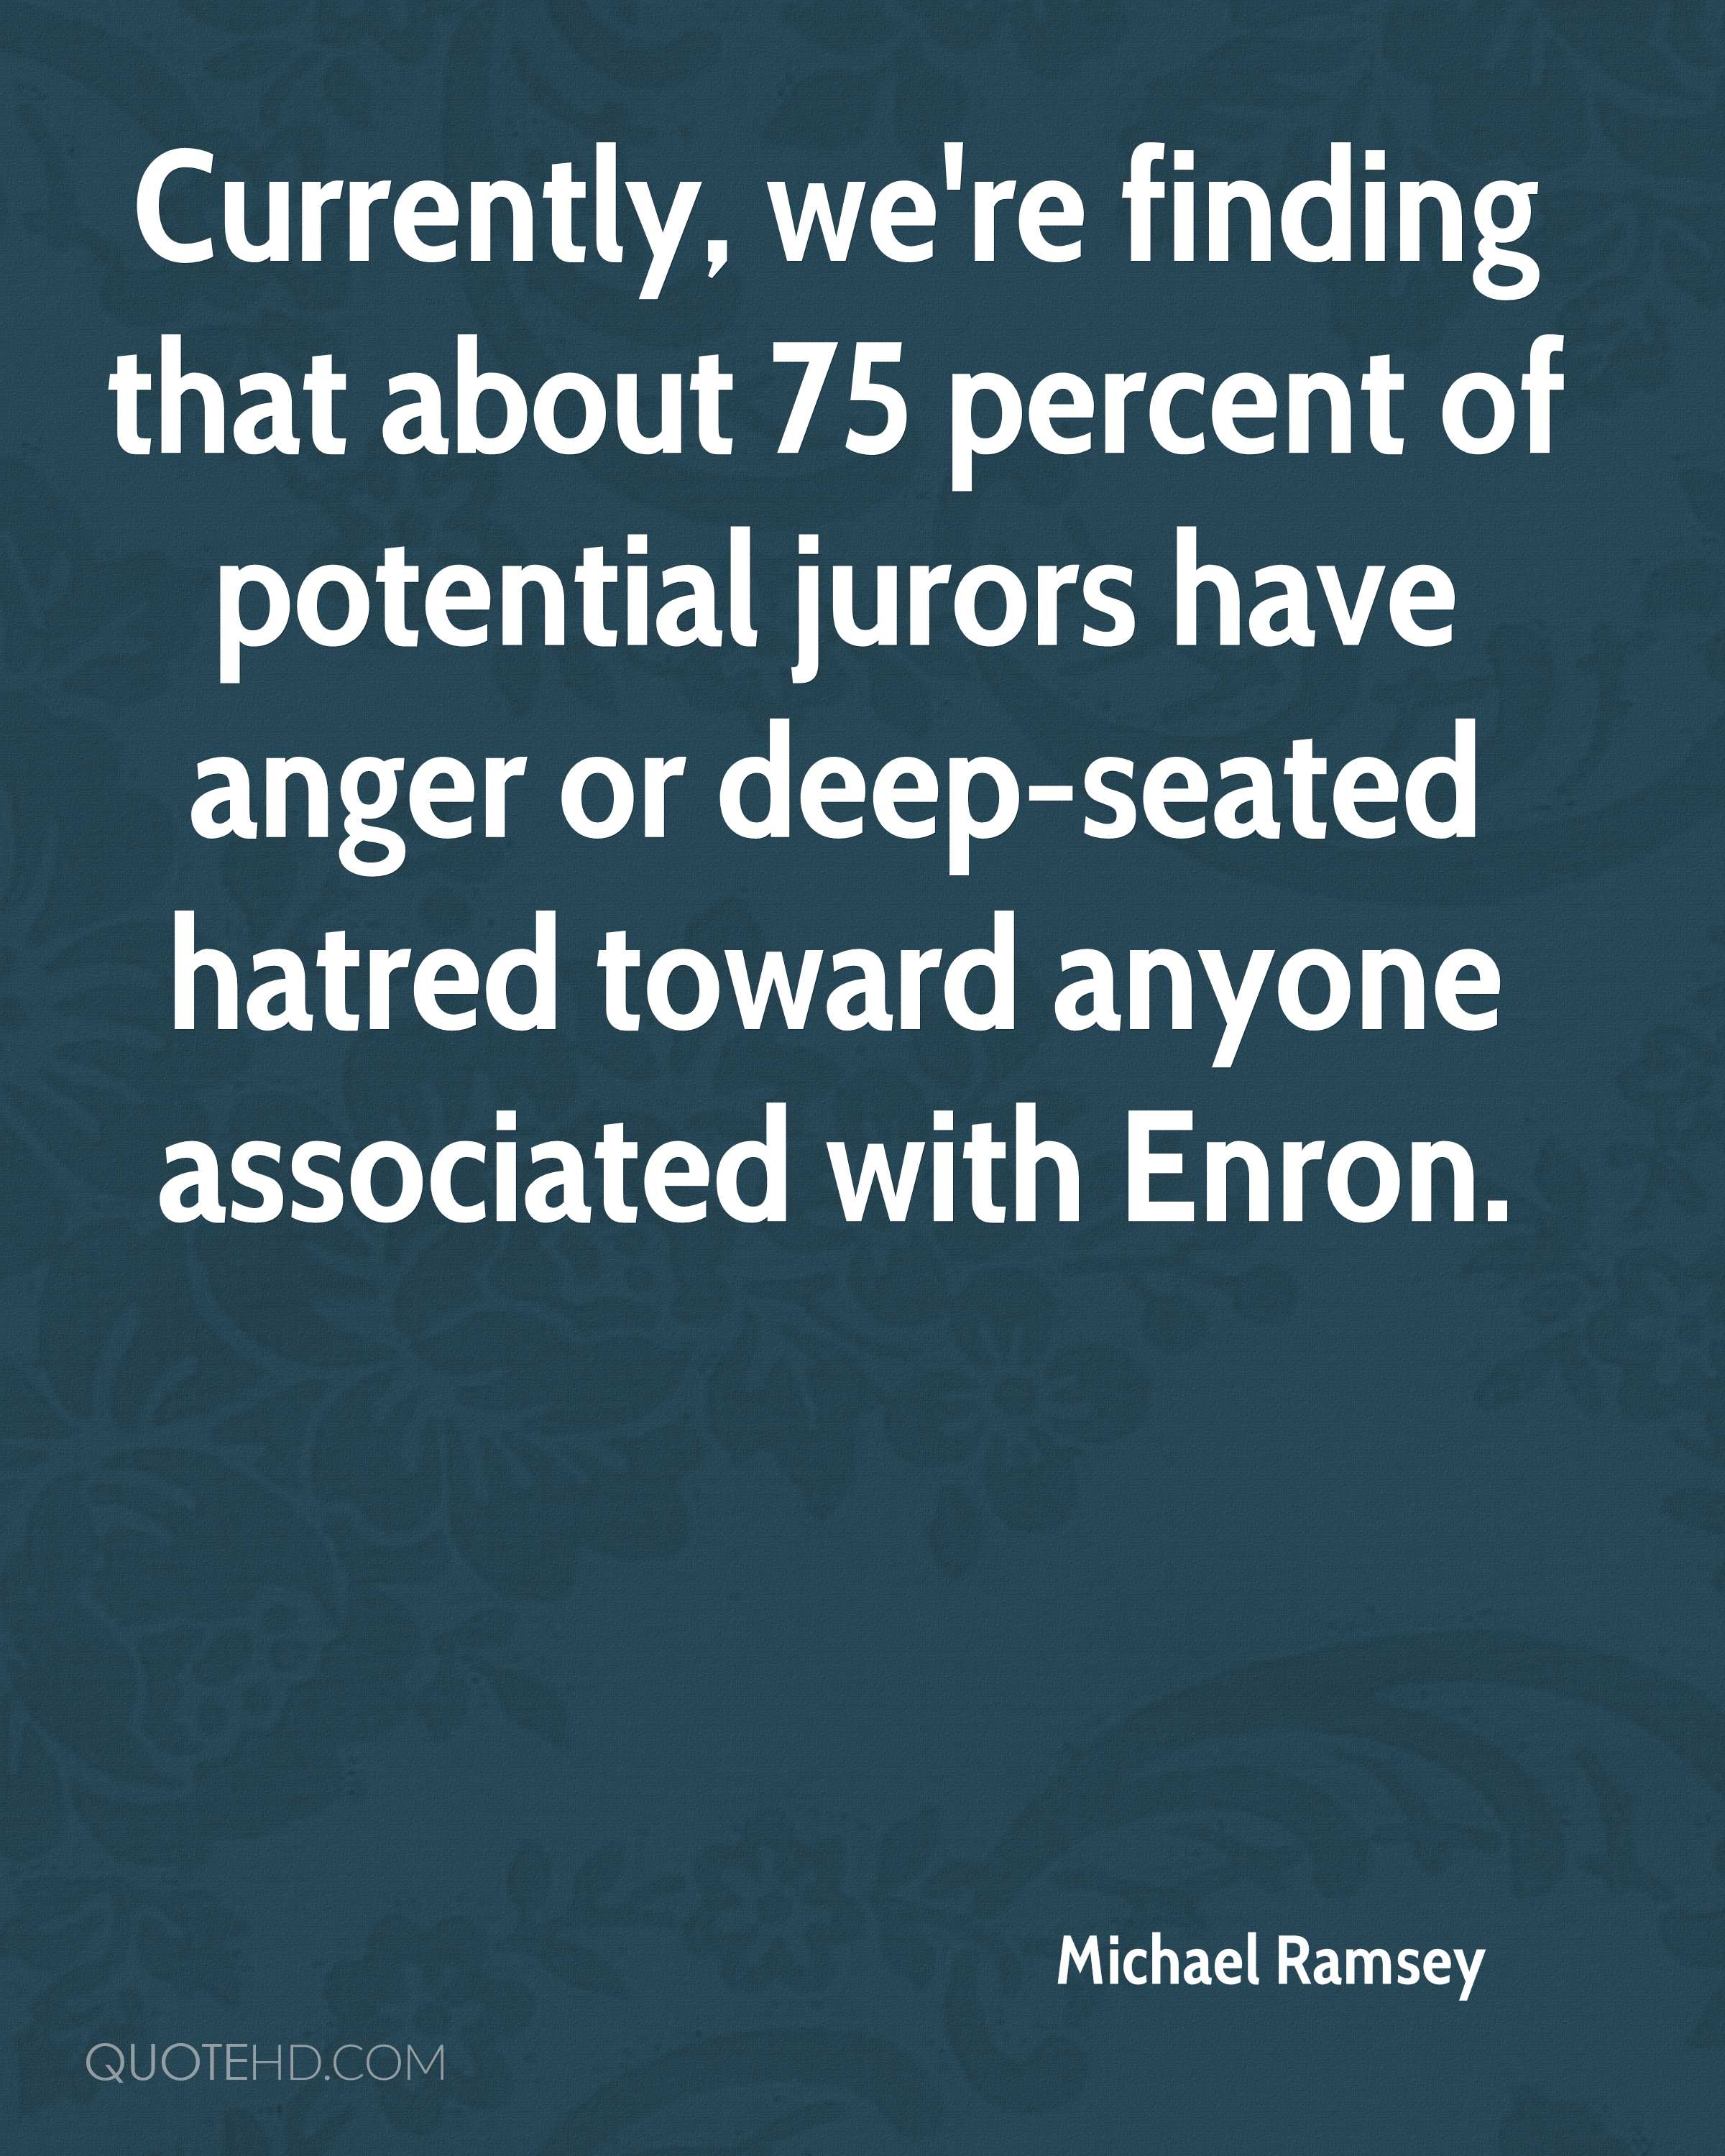 Currently, we're finding that about 75 percent of potential jurors have anger or deep-seated hatred toward anyone associated with Enron.